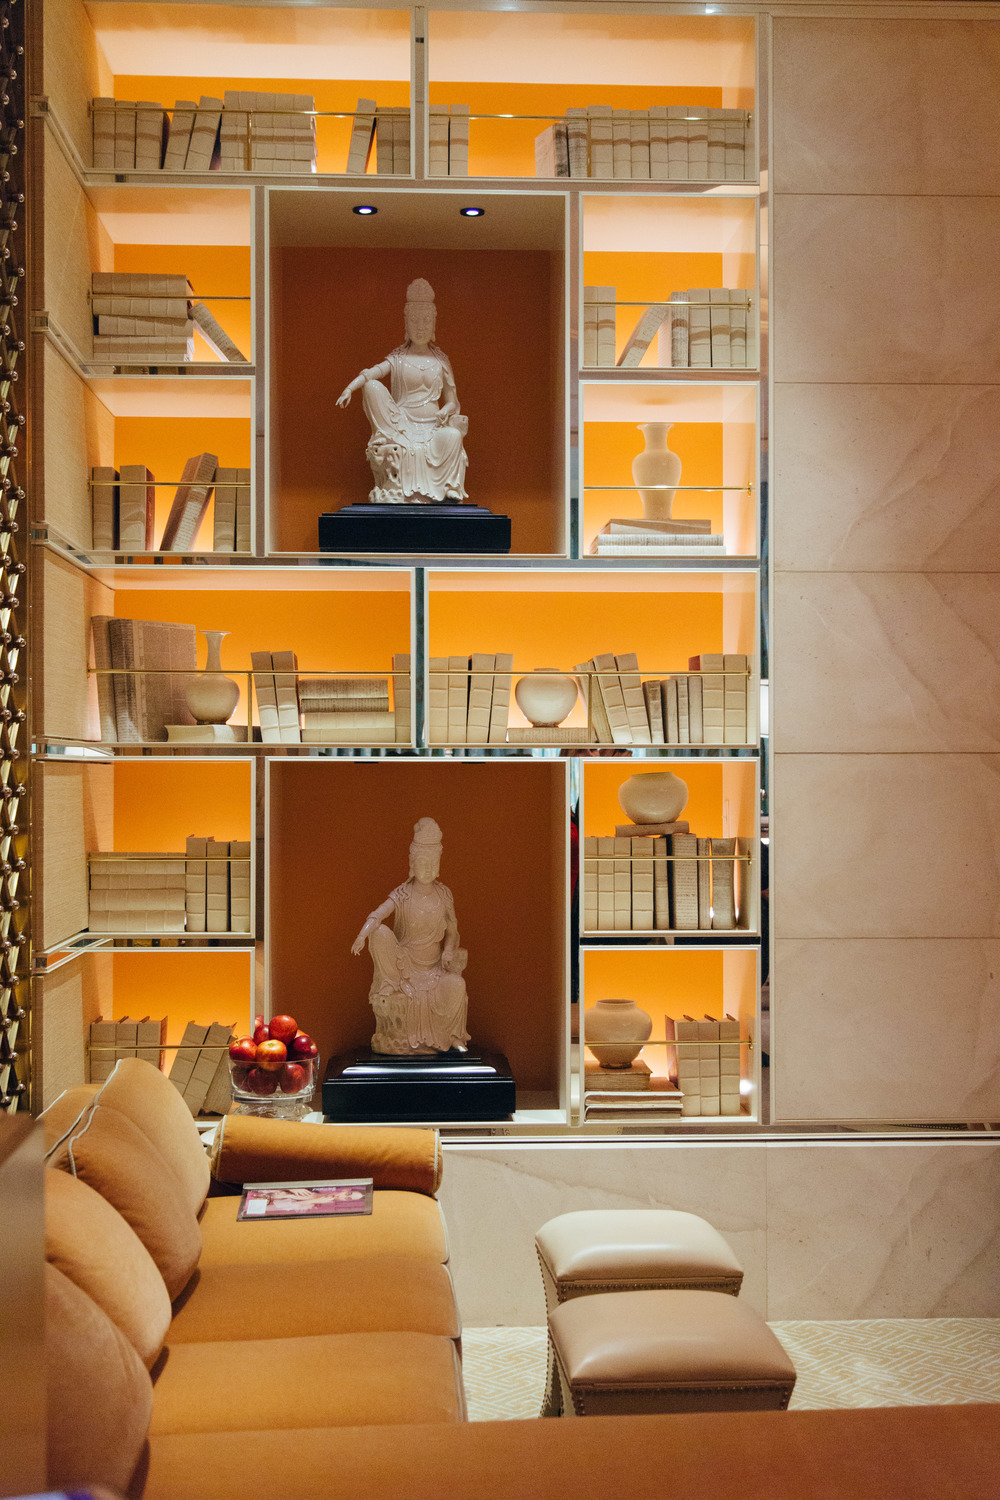 Wynn Hotel, spa, bookshelf, bookcase styling, backlit bookshelving | Photographer: Tori Aston